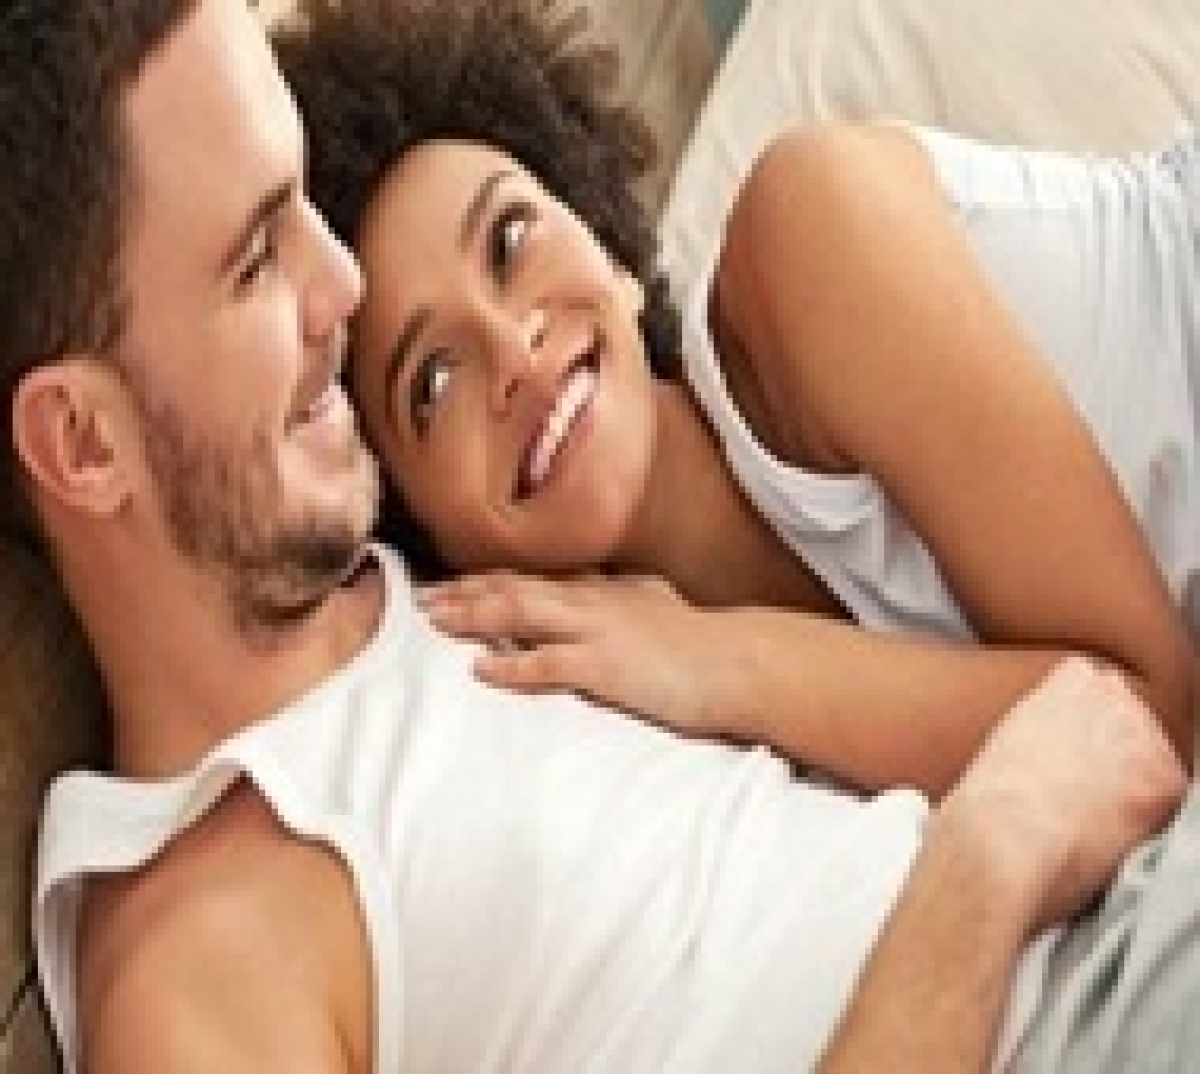 Feel good about your looks and enjoy healthy sex life